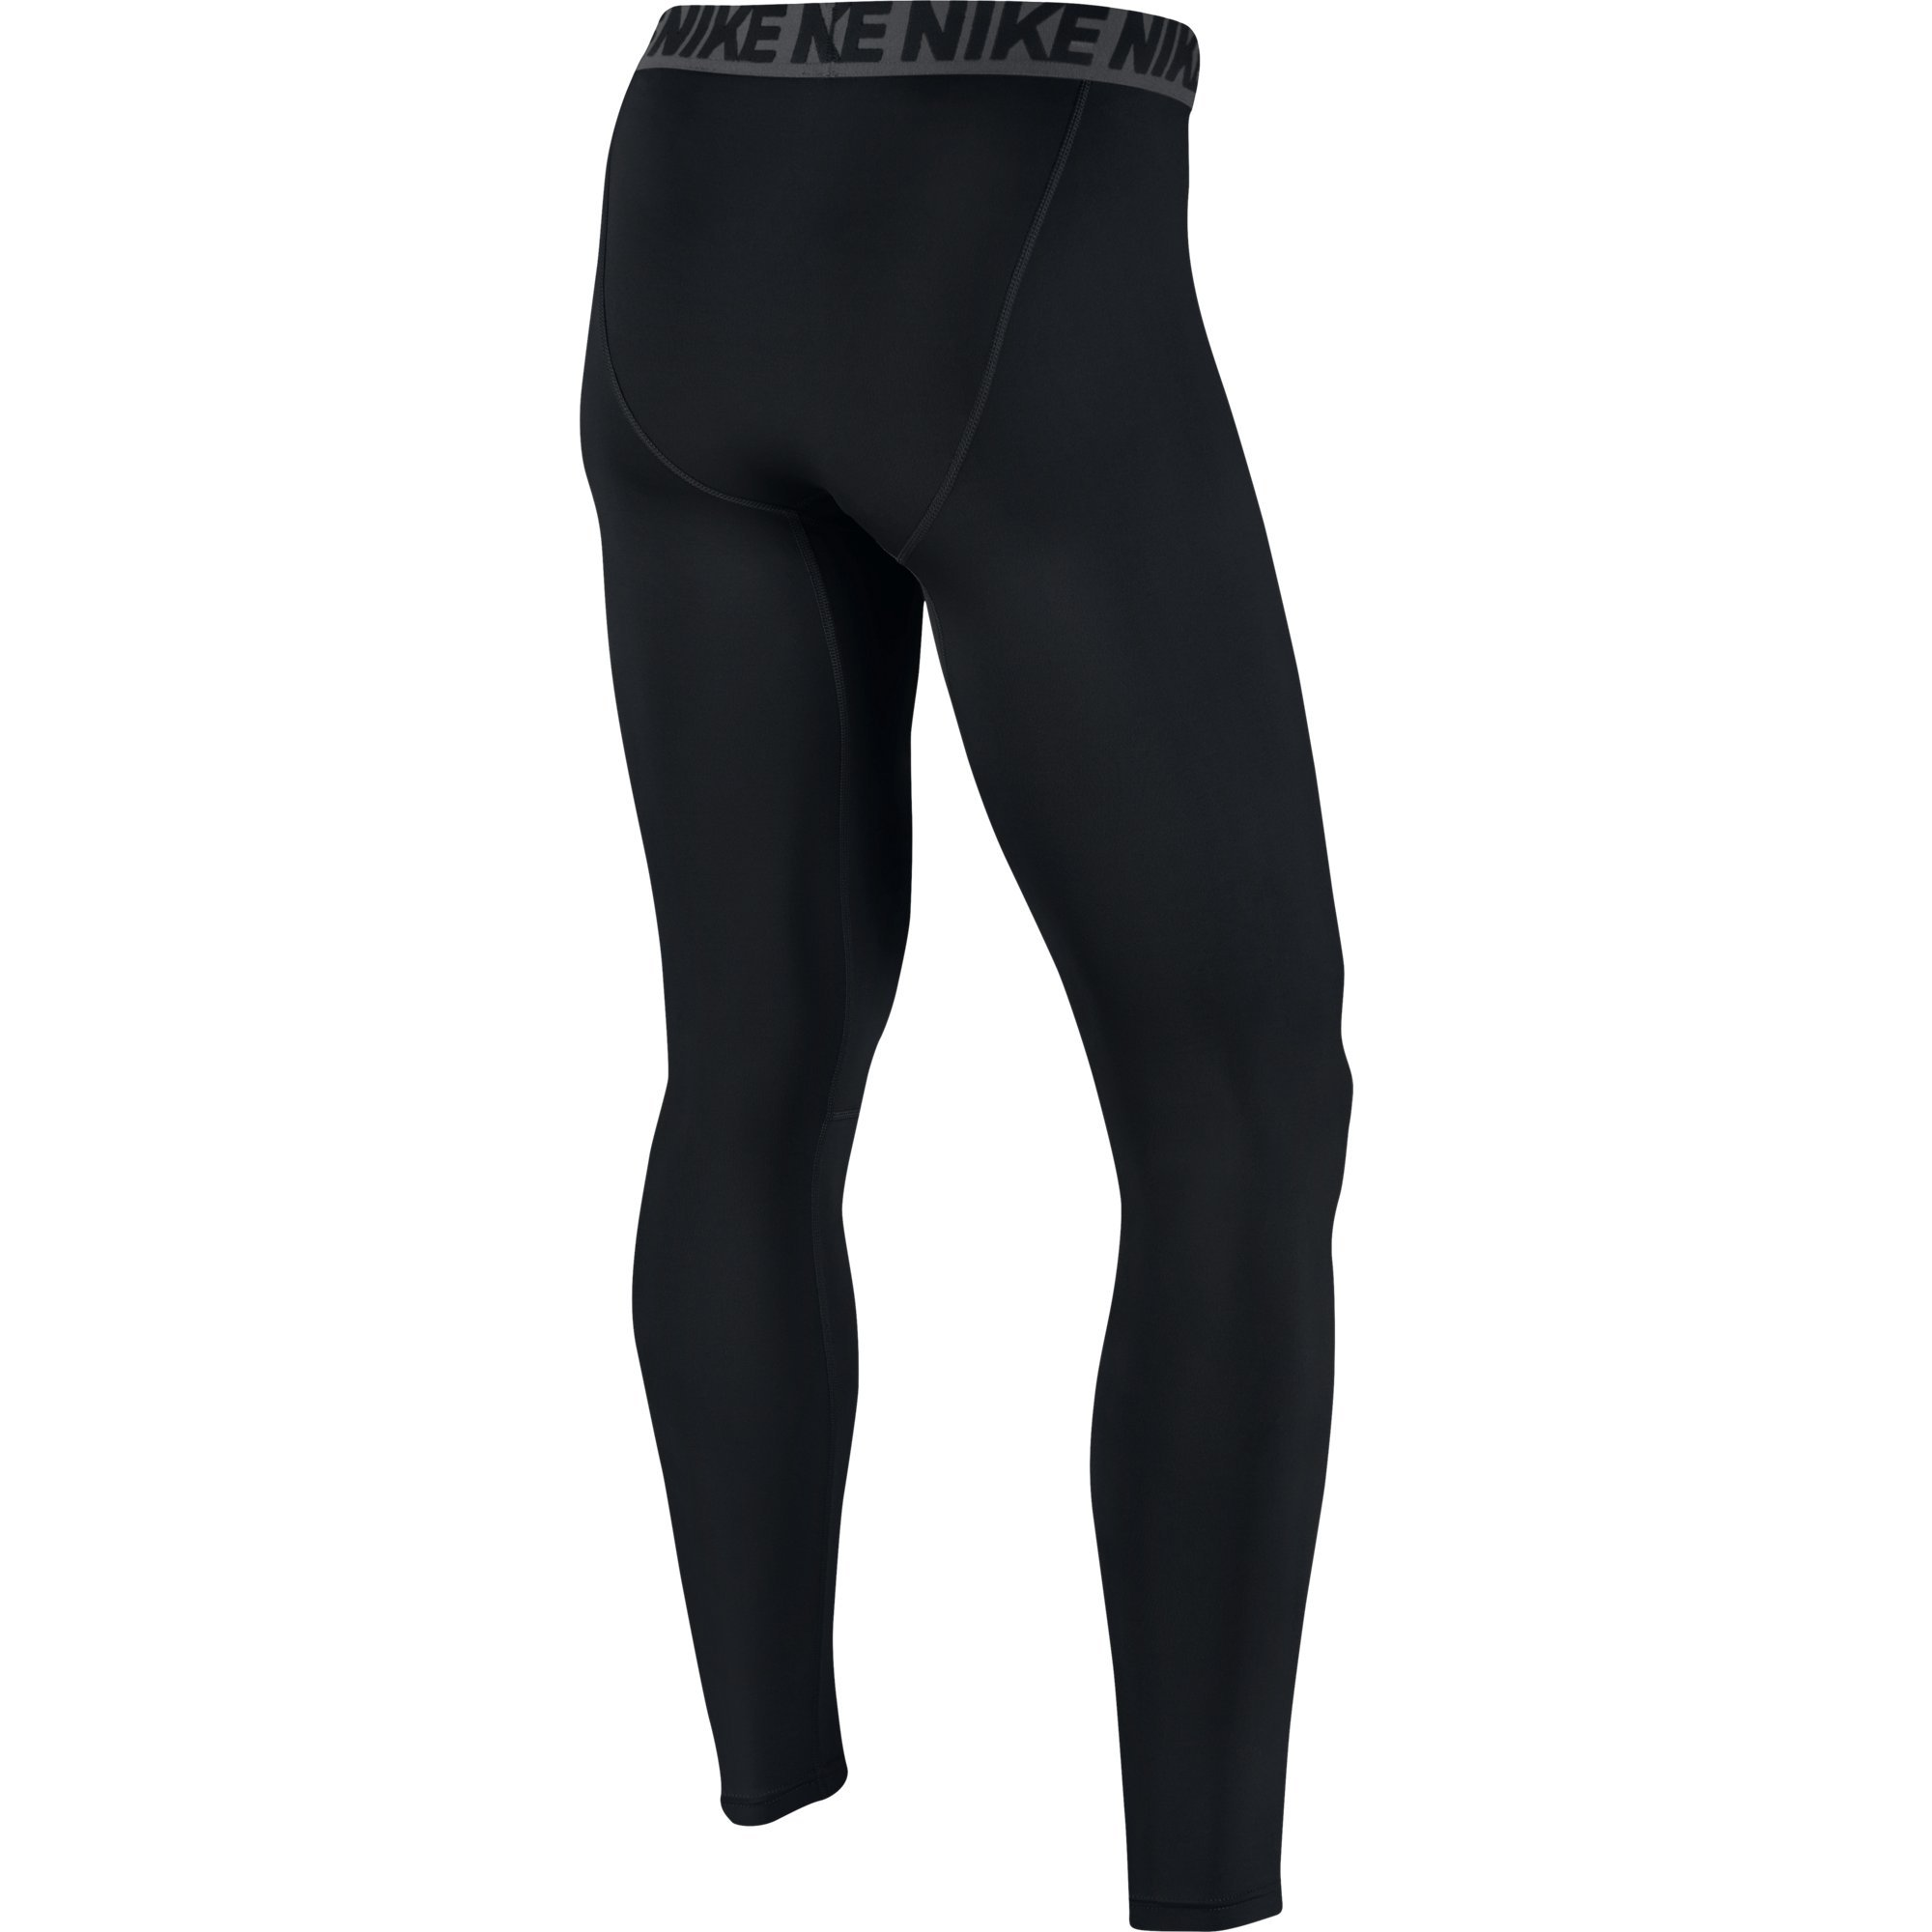 NIKE Men's Base Layer Training Tights, Black/Dark Grey/White, Medium by Nike (Image #2)